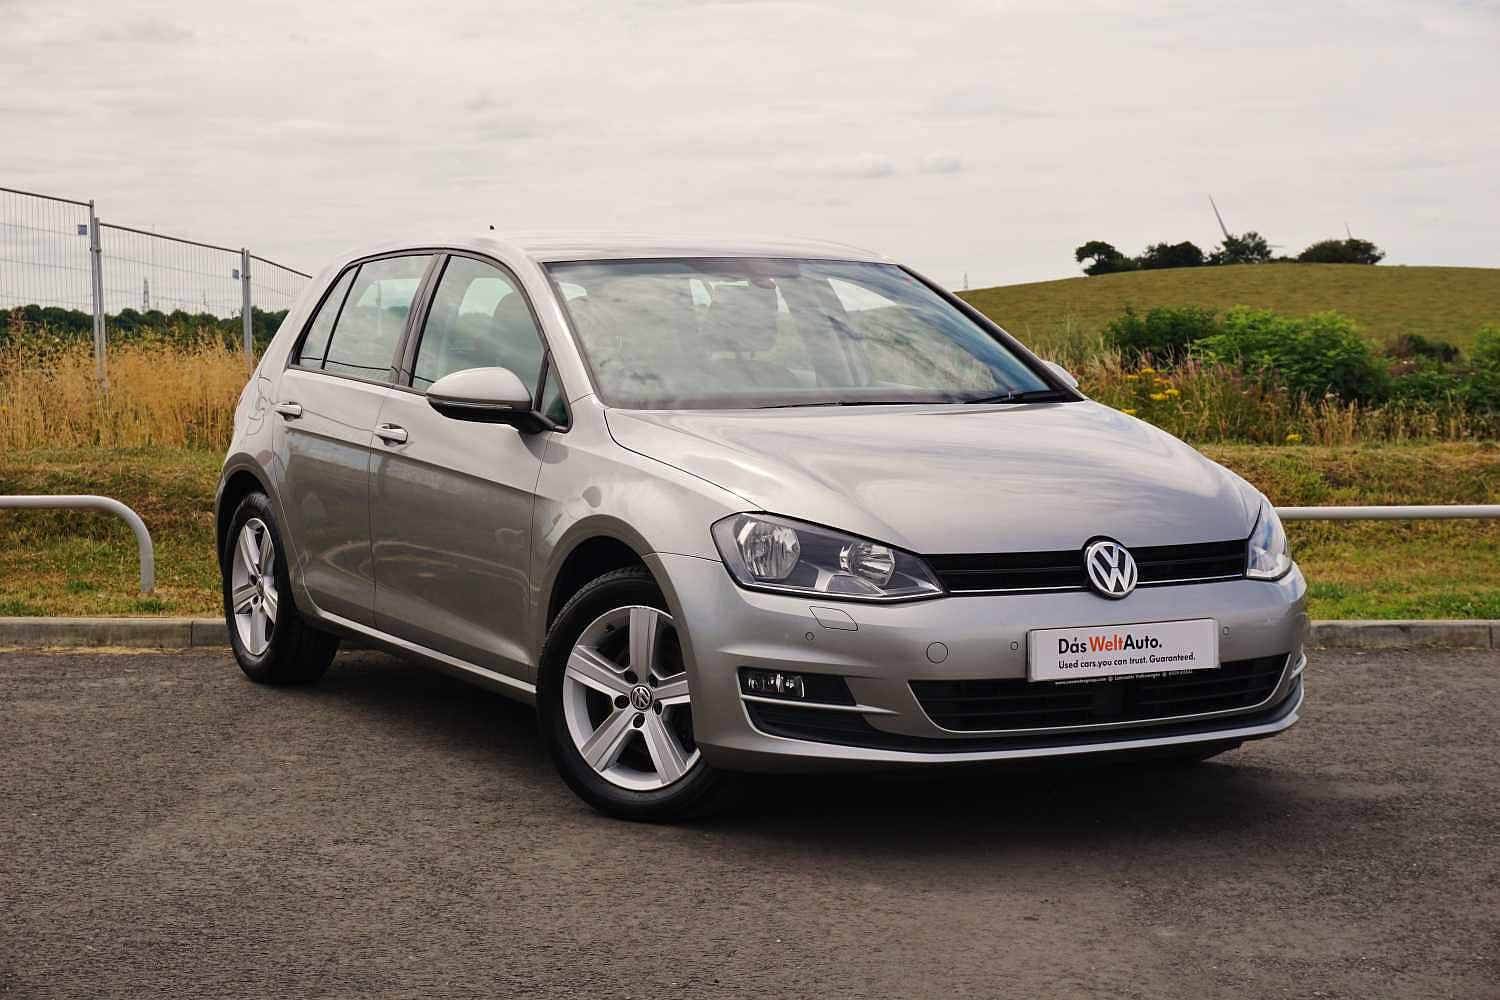 Volkswagen Golf 1.6 TDI Match Edition 110PS 5Dr